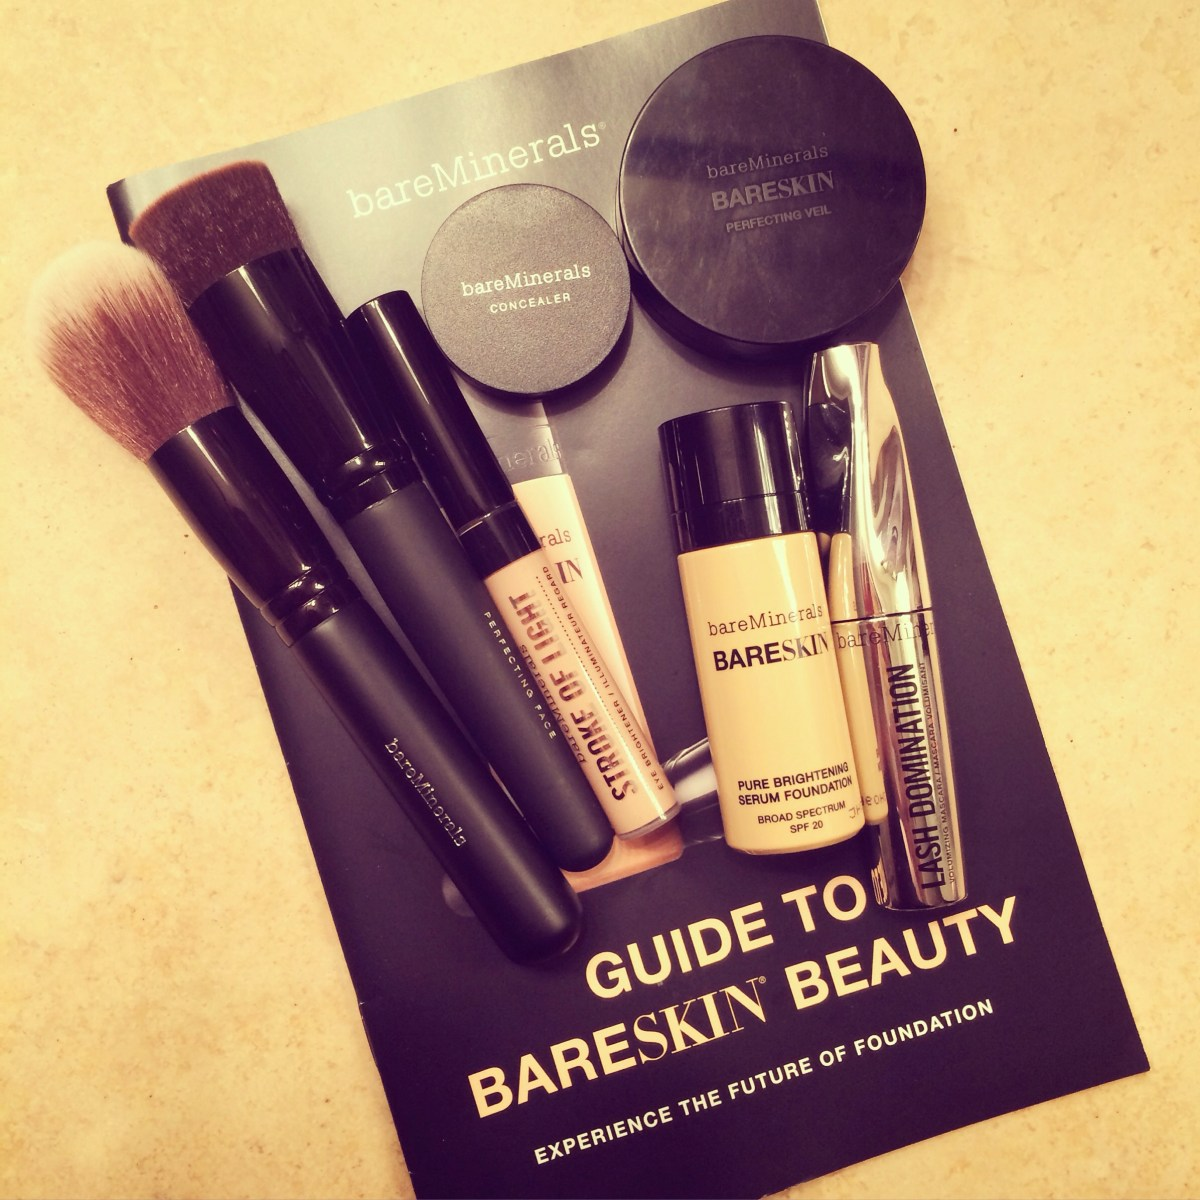 Bare Escentuals BareMinerals bareSkin Get Started Kit